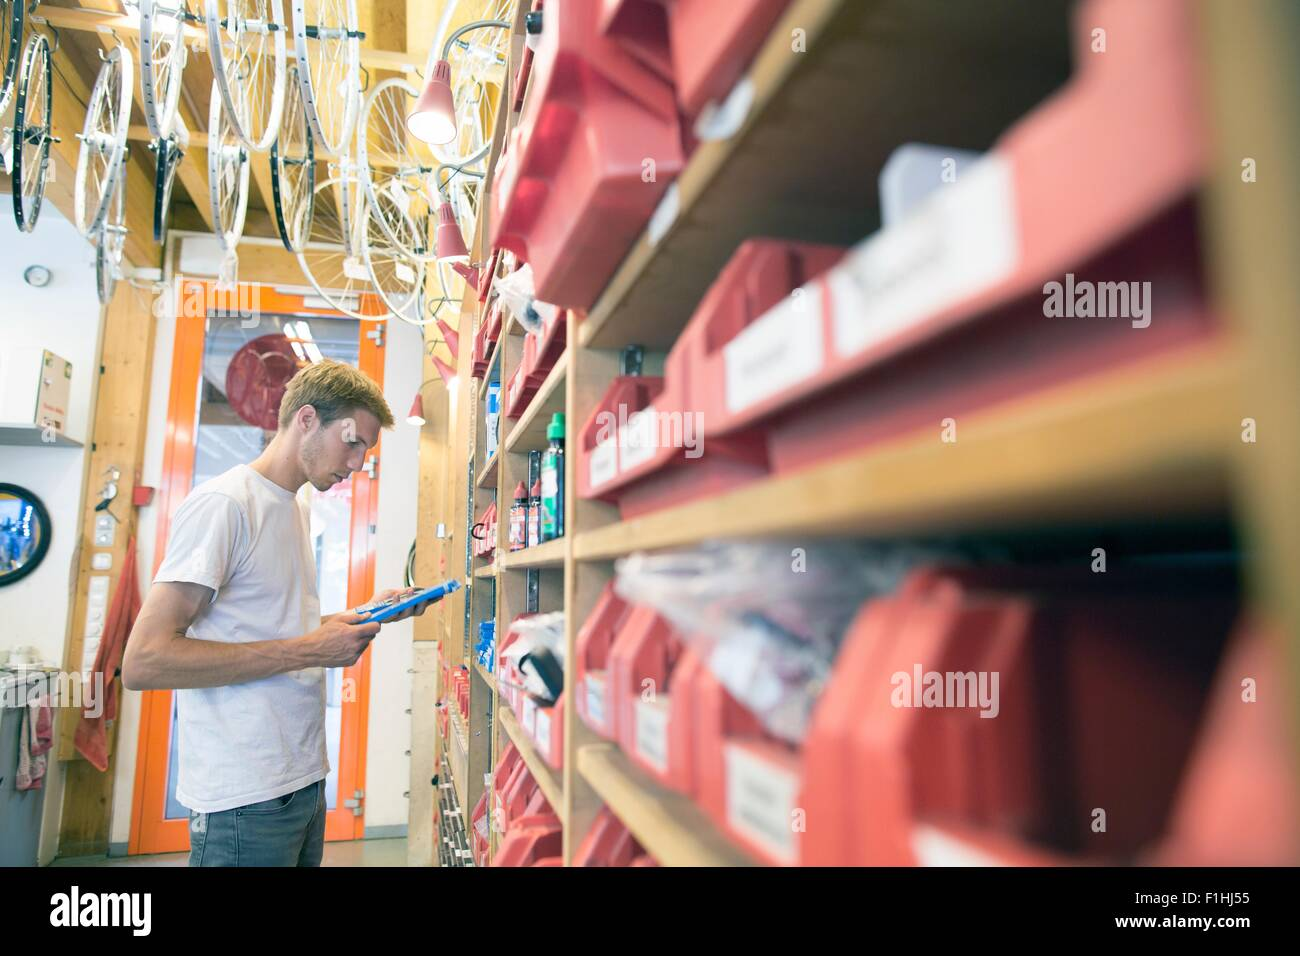 Mid adult man in storage room choosing bicycle part - Stock Image